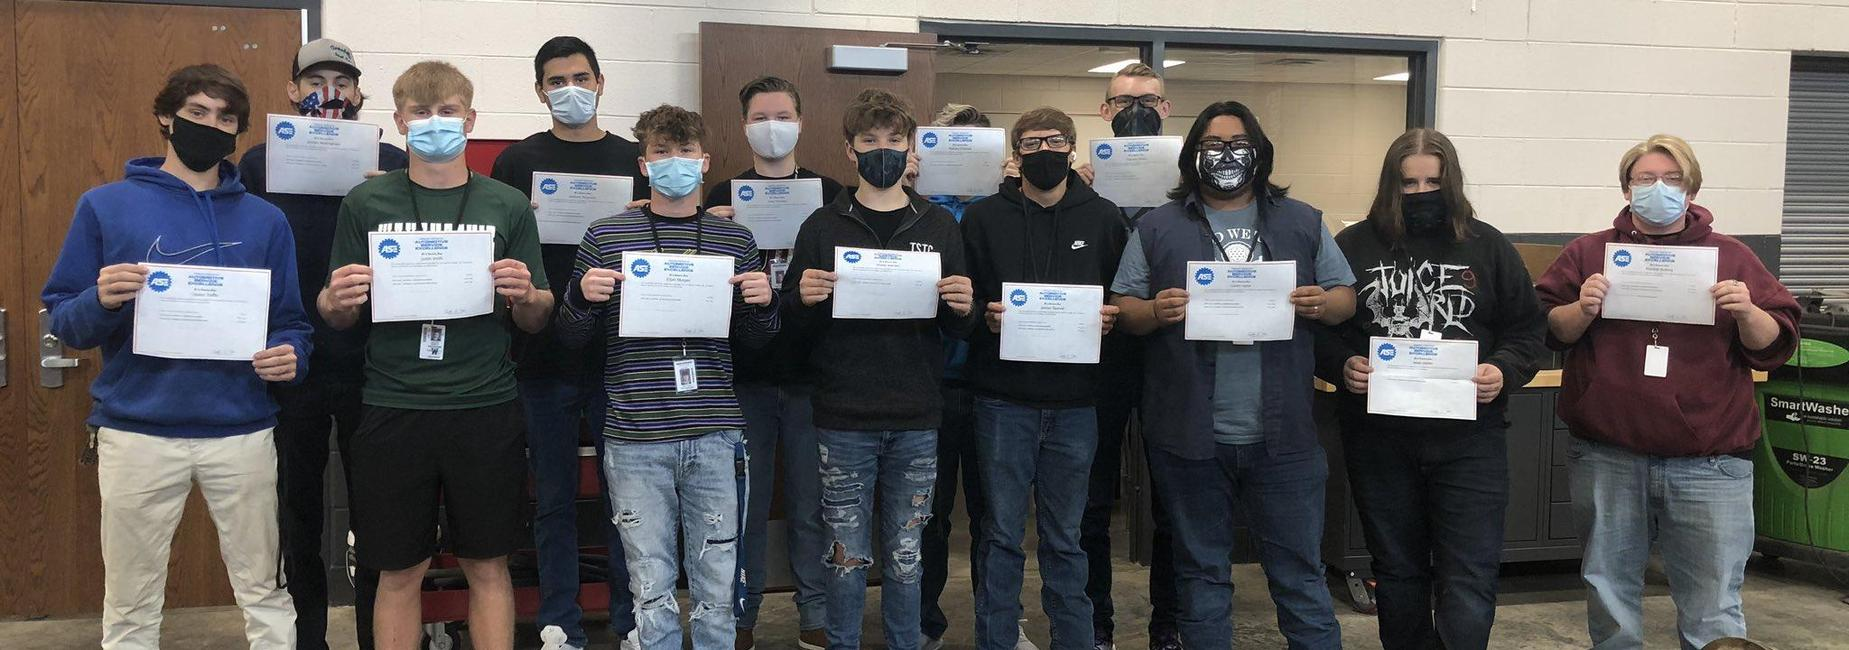 13 young men in a row holding certificates wearing facemasks